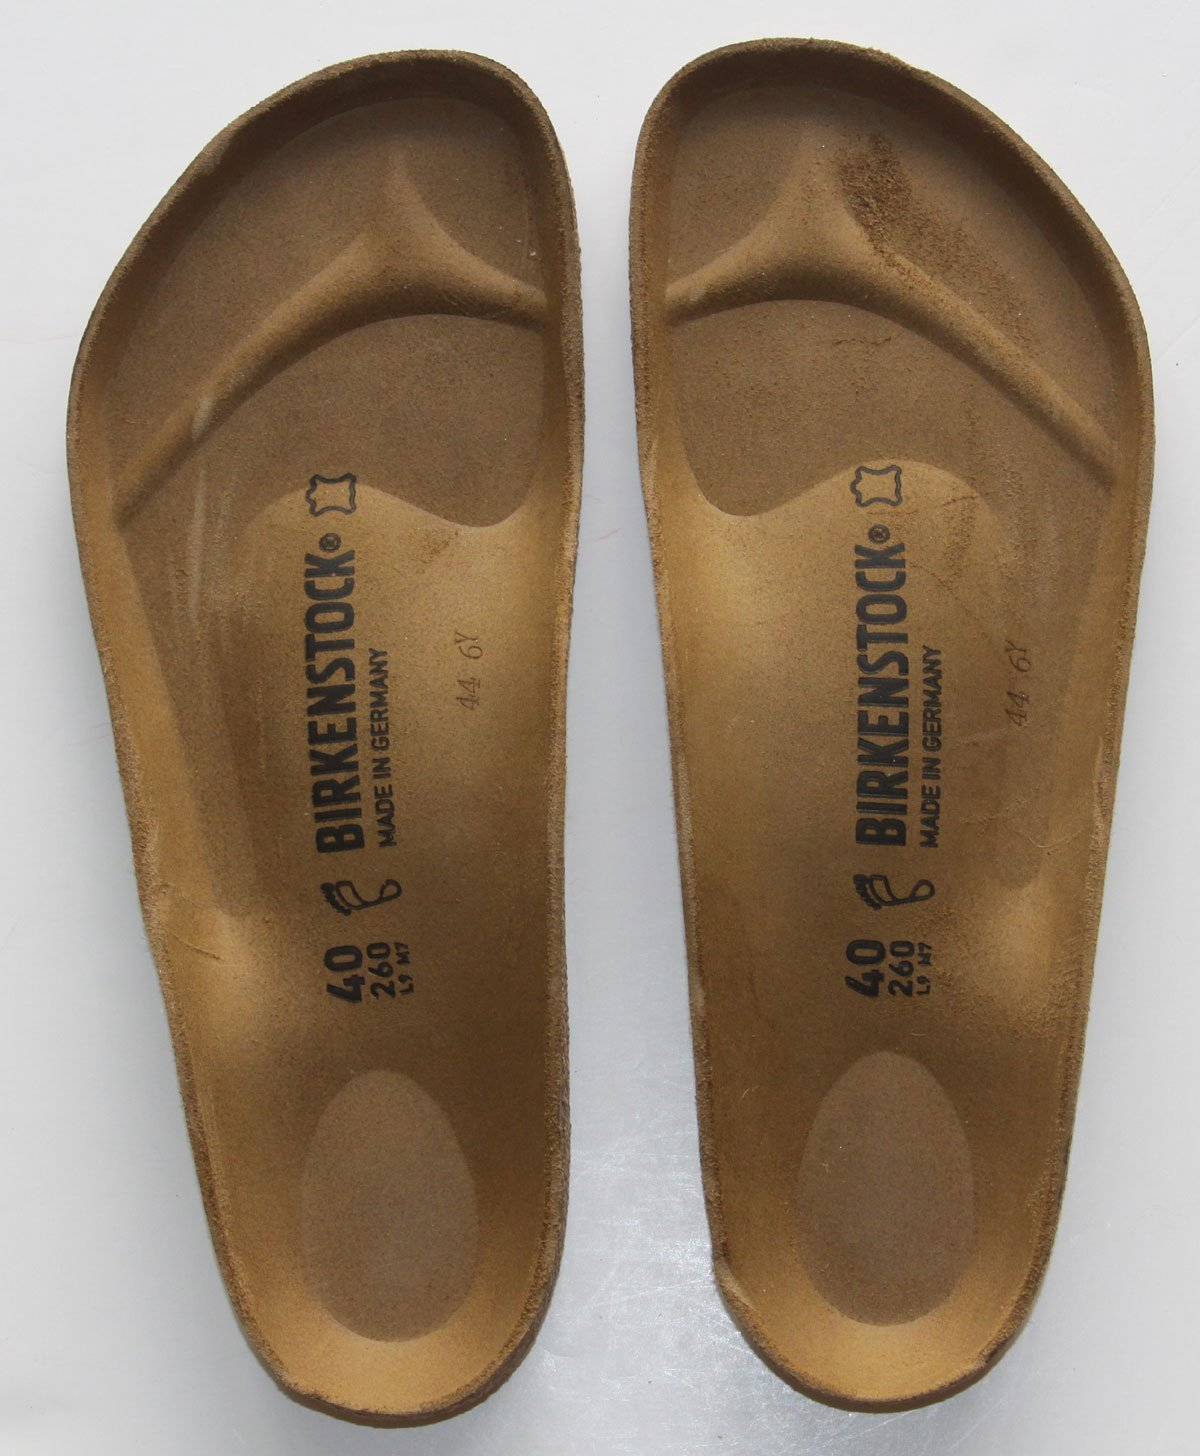 249064e4fb27 Get Quotations · Birkenstock Cork Replacement Foot Bed Regular and Narrow  Width (40R)